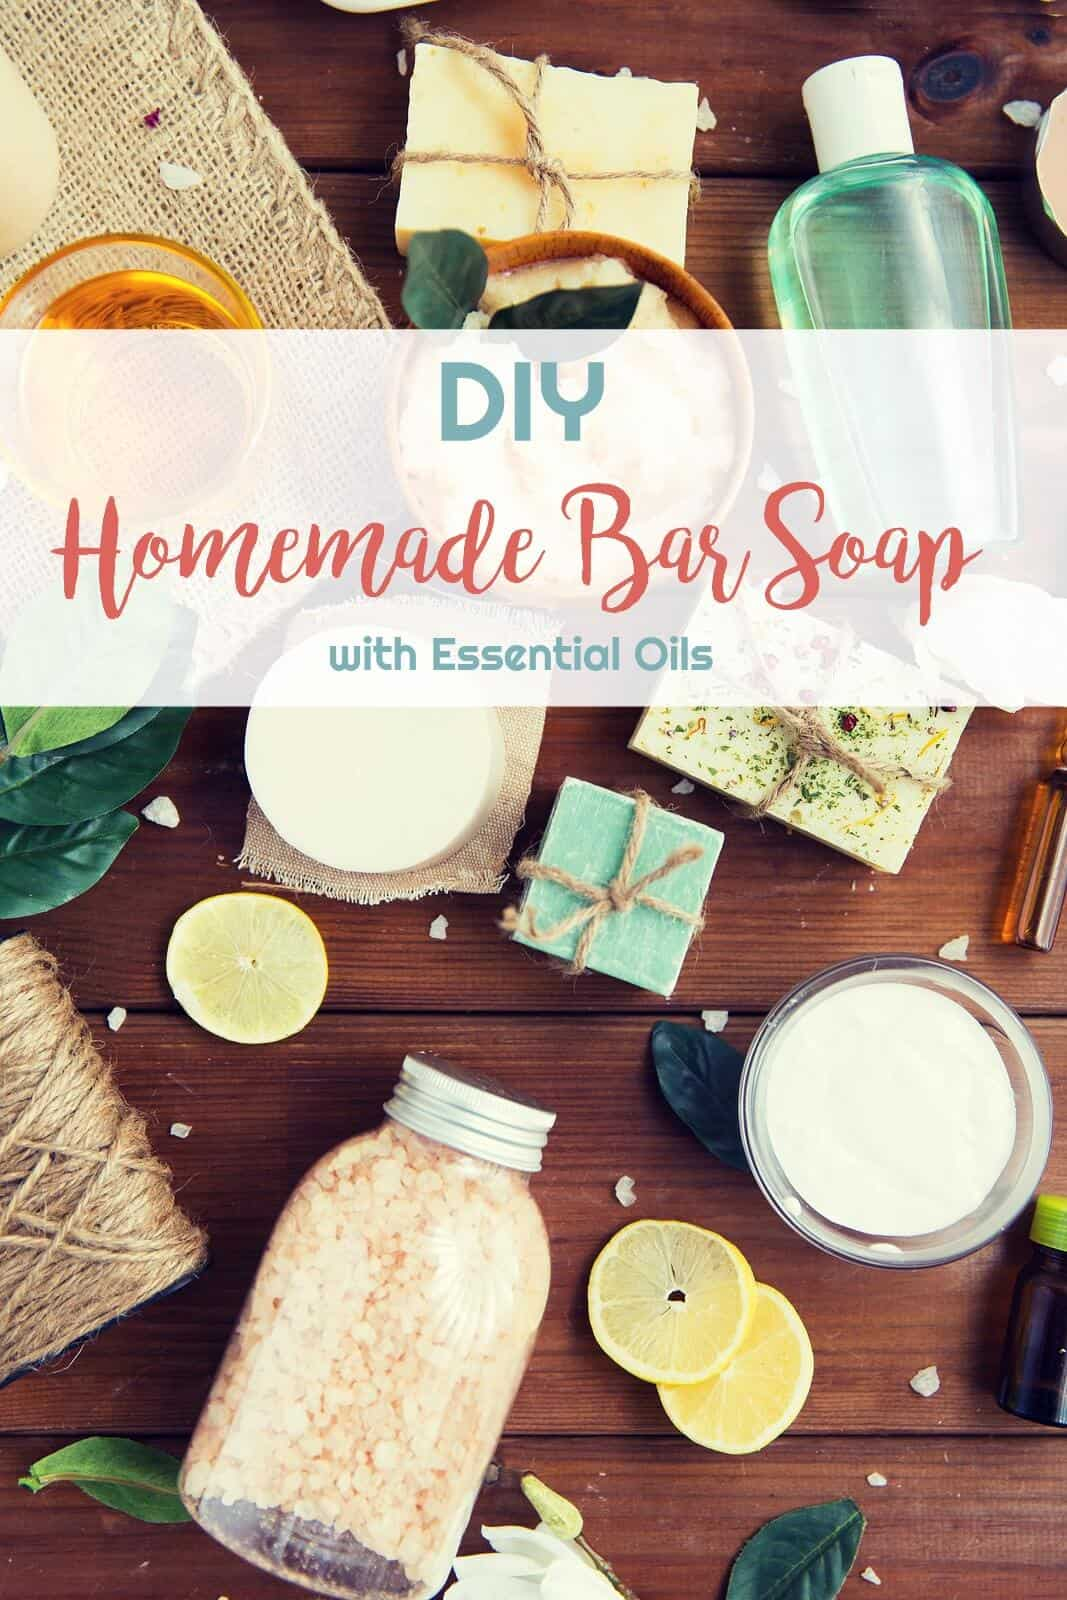 DIY Homemade Bar Soap with Essential Oils | Healthy Living in Body and Mind